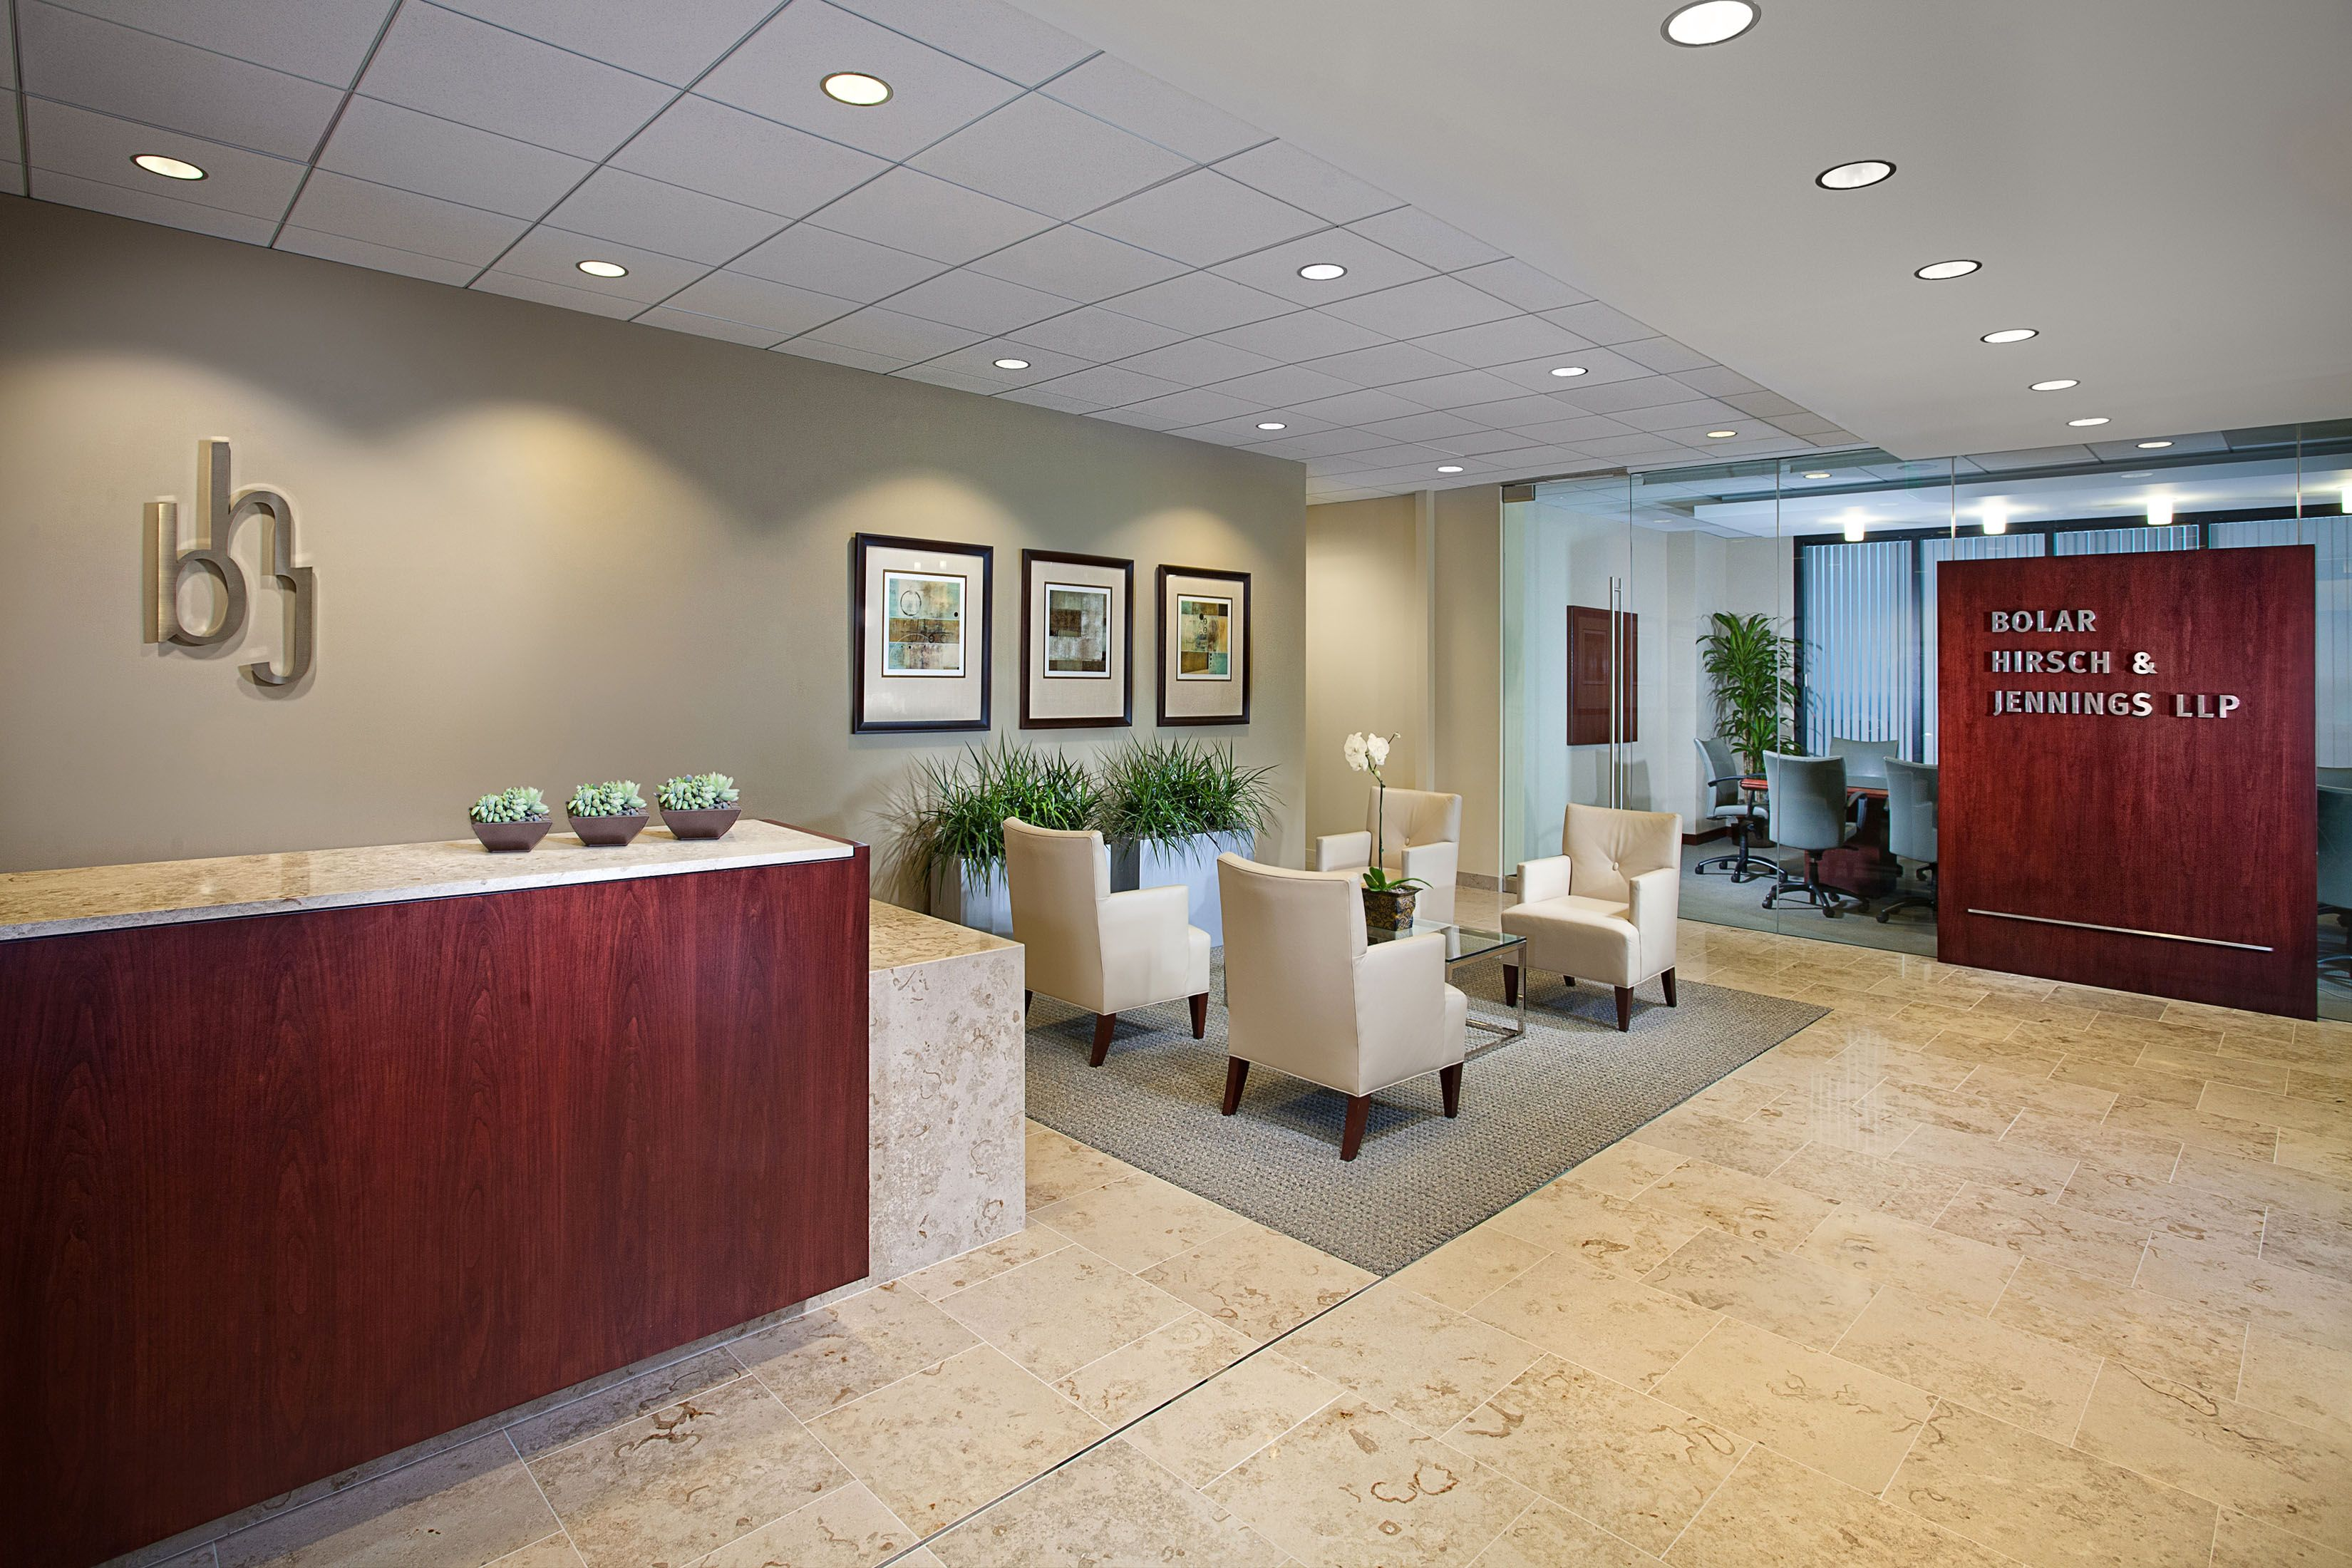 real estate office lobby - Google Search | Office design ...